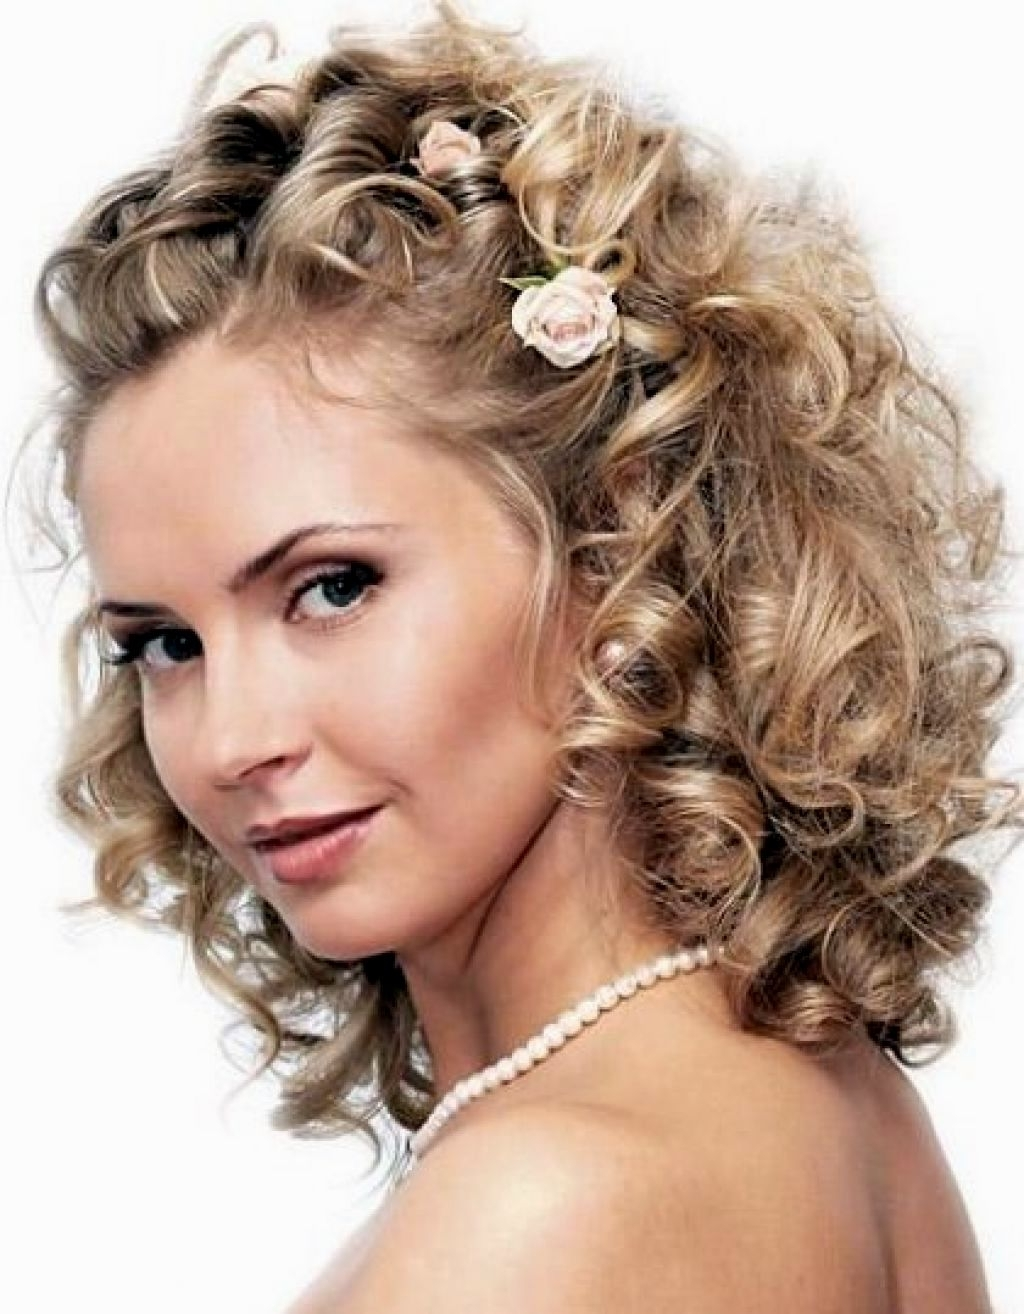 Bridalrstyles Medium Lengthr Wedding For With Veil Long And Headband With Trendy Wedding Hairstyles For Mid Length Hair With Fringe (View 2 of 15)